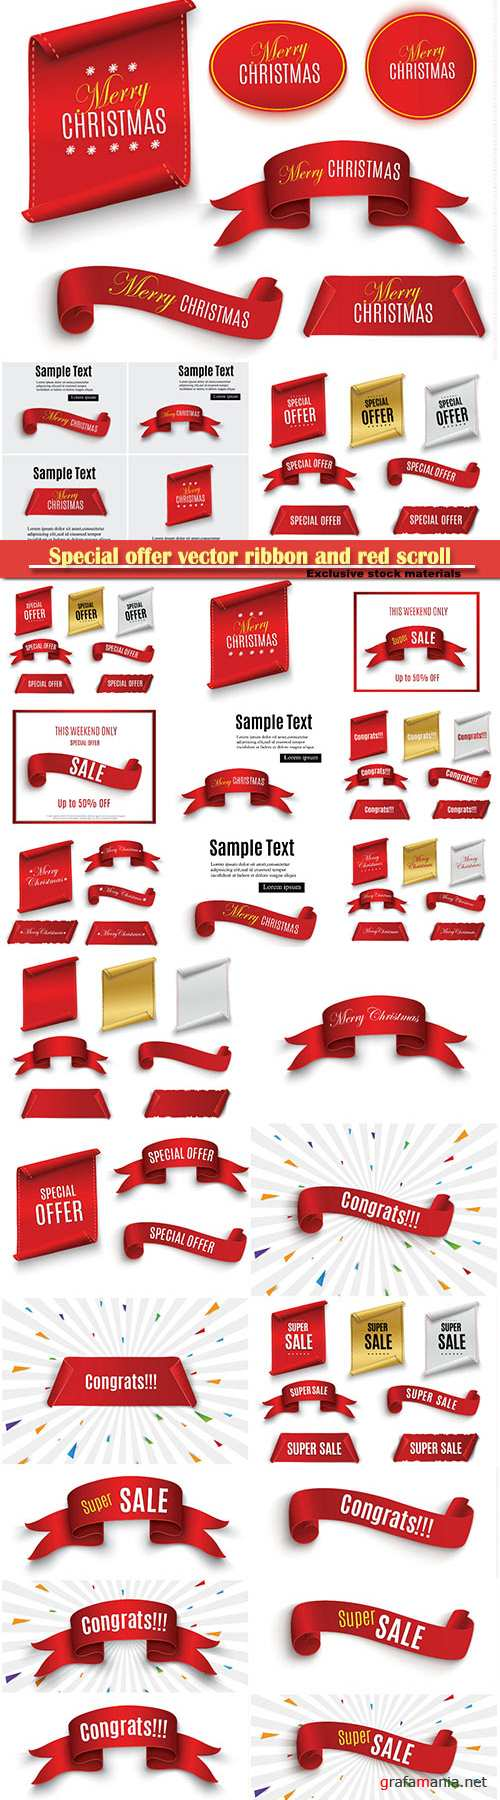 Special offer vector ribbon and red scroll, banner sale tag